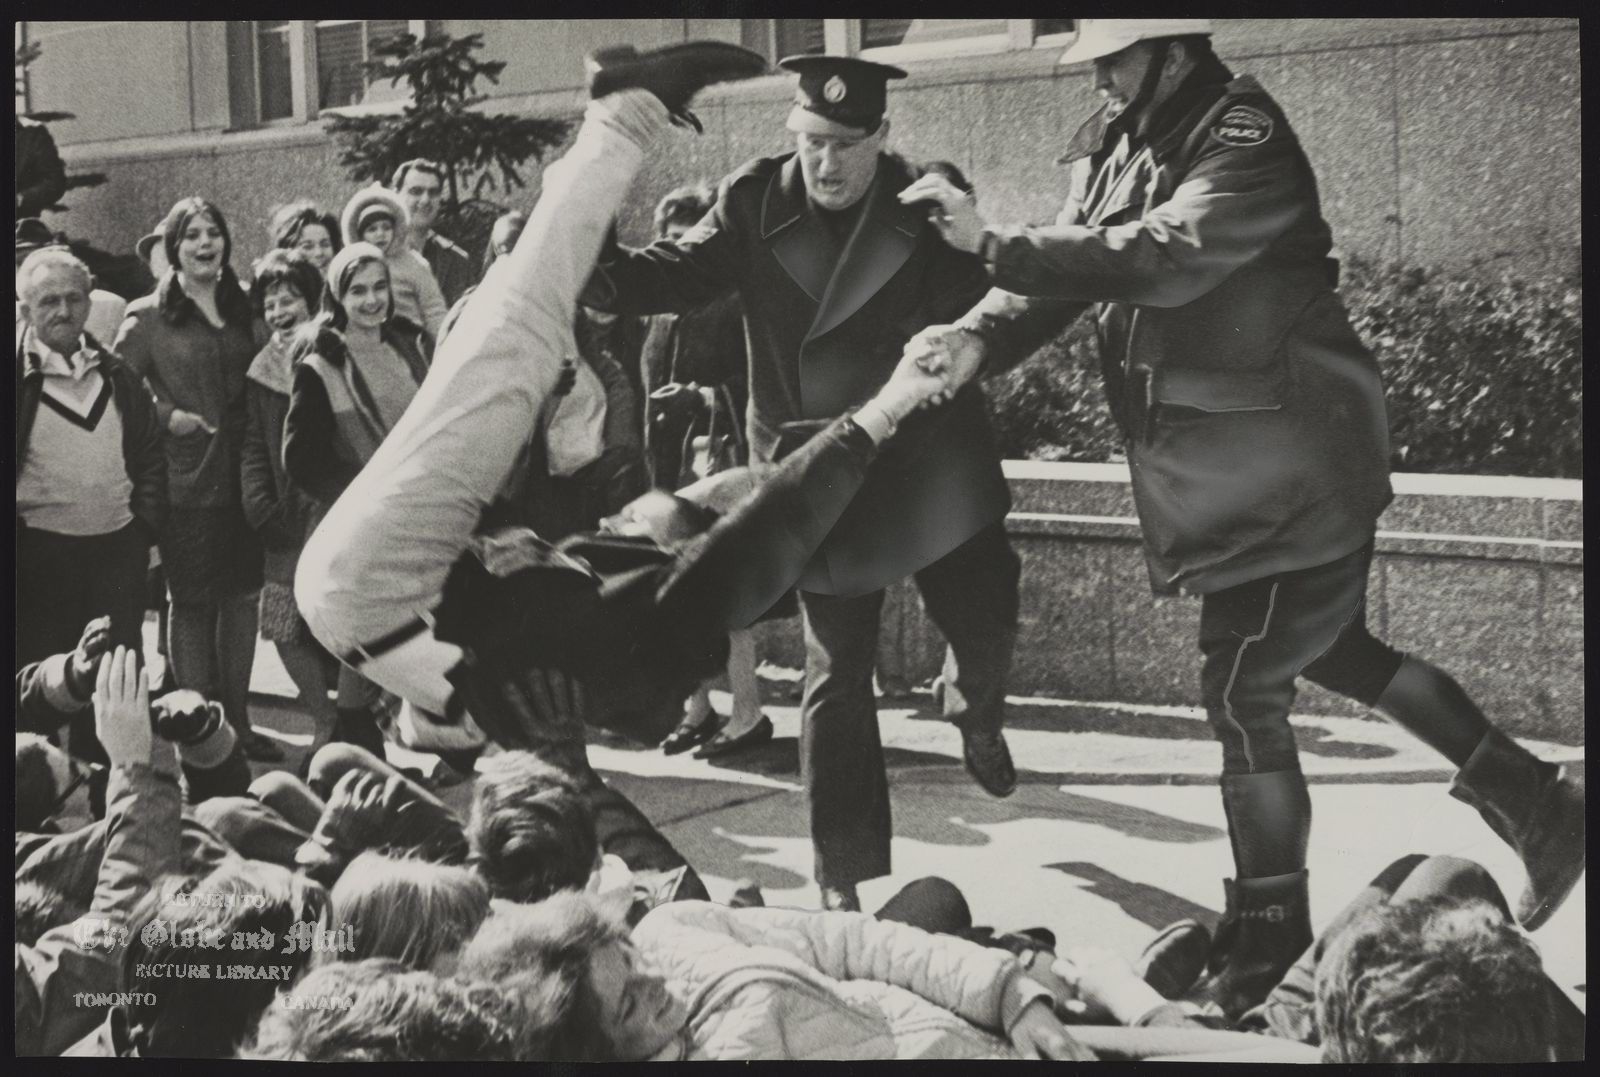 The notes transcribed from the back of this photograph are as follows: Demonstrations Racial Patrol Sgt. Donald Dodgson and Constable Thomas Moclair put their backs into it as they toss a student in Toronto back to the curb.